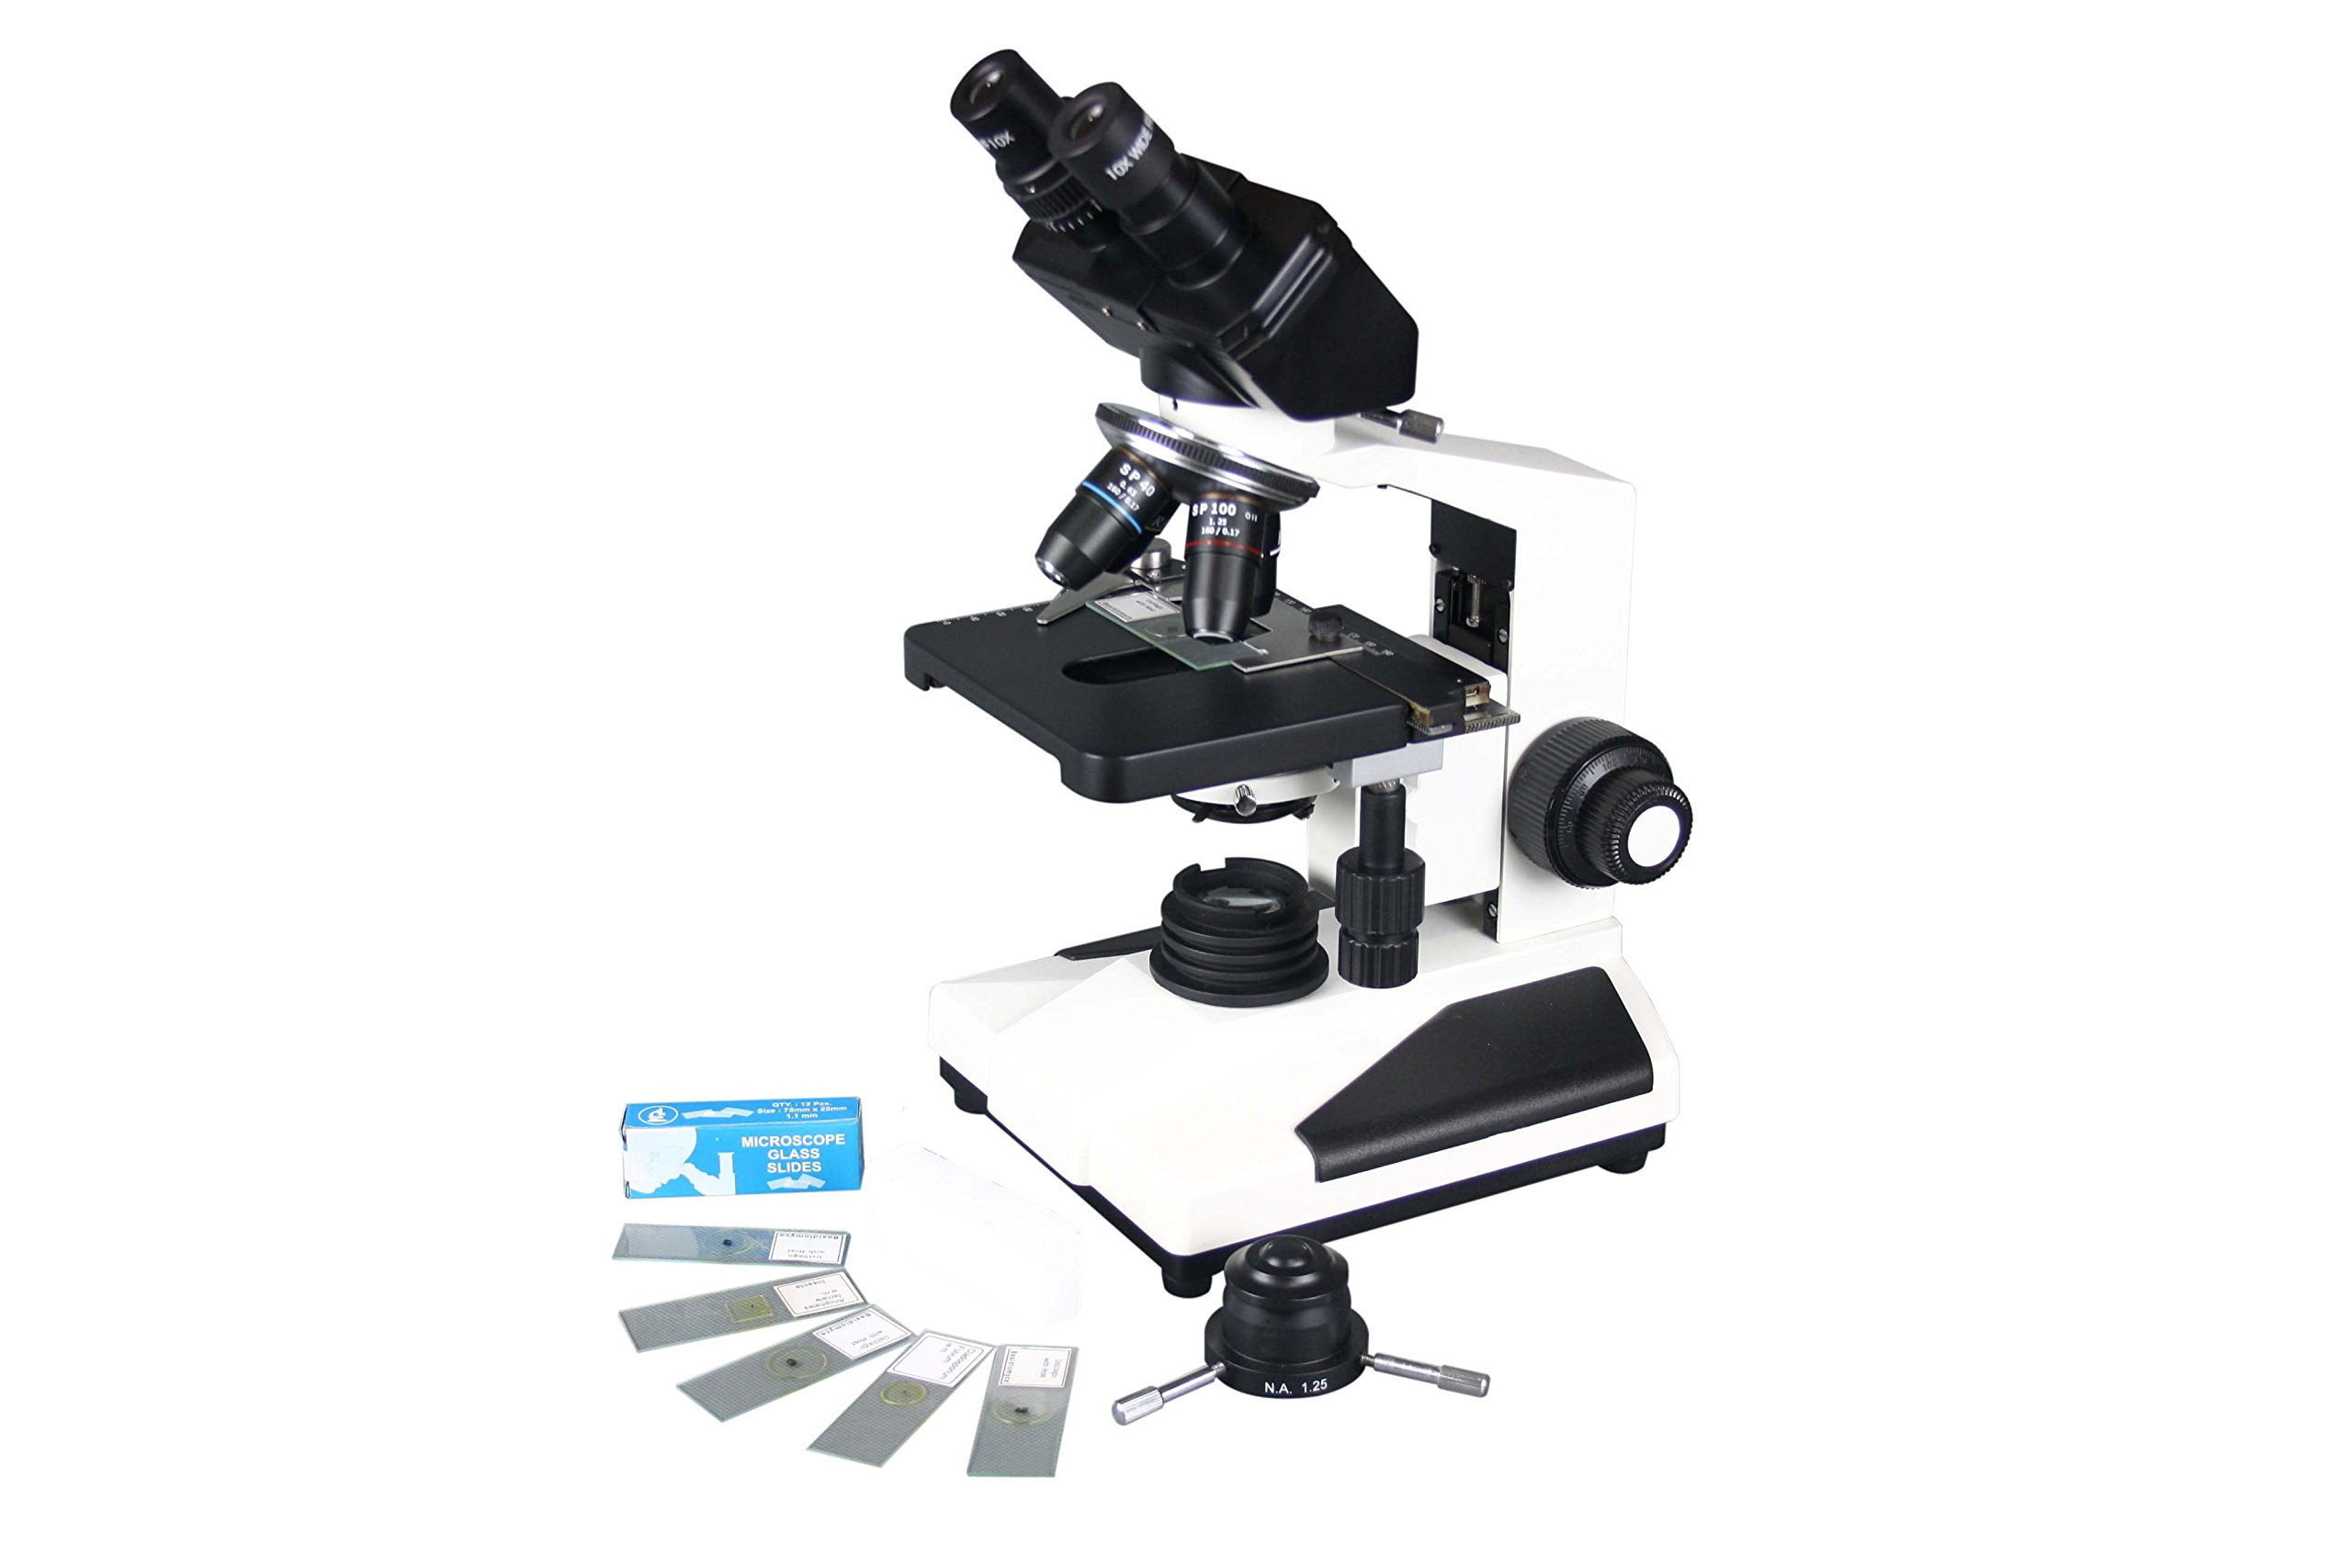 Radical Research Quality Brightfield & Darkfield Binocular Clinical Biology LED Microscope by Radical